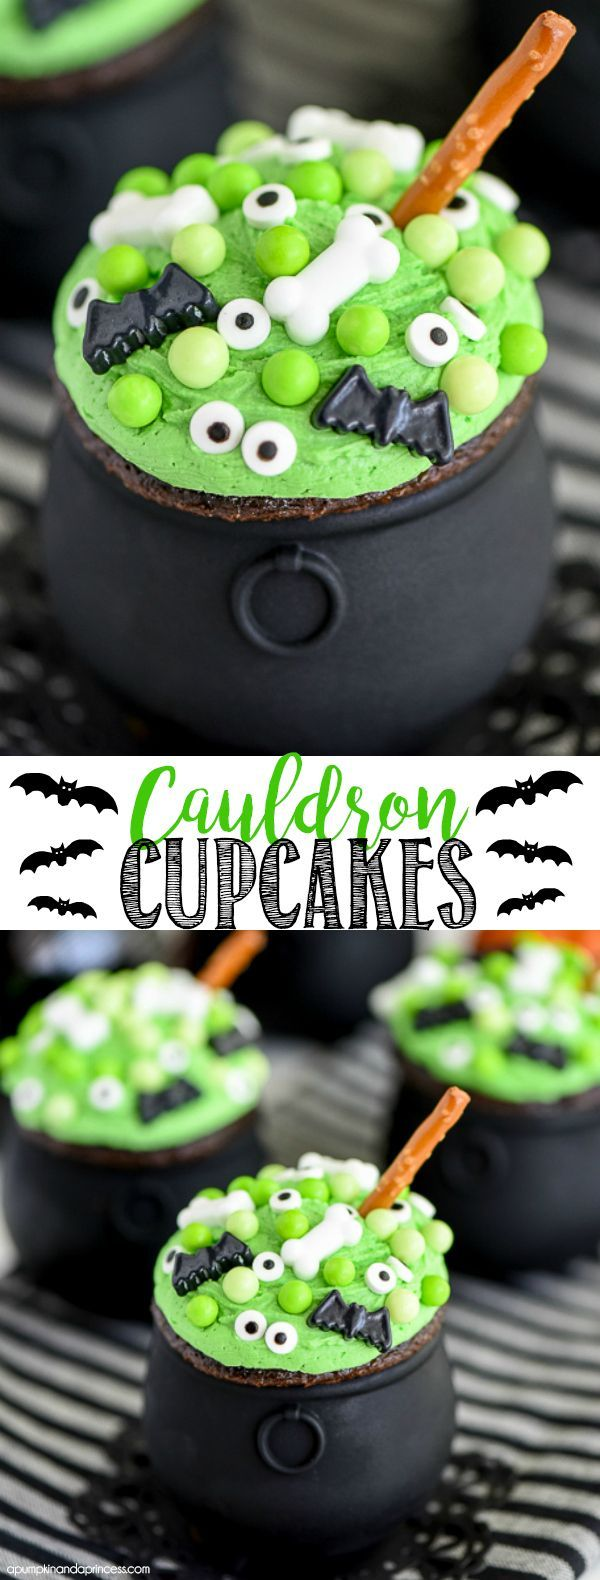 Cauldron Cupcakes                                                                                                                                                                                 More